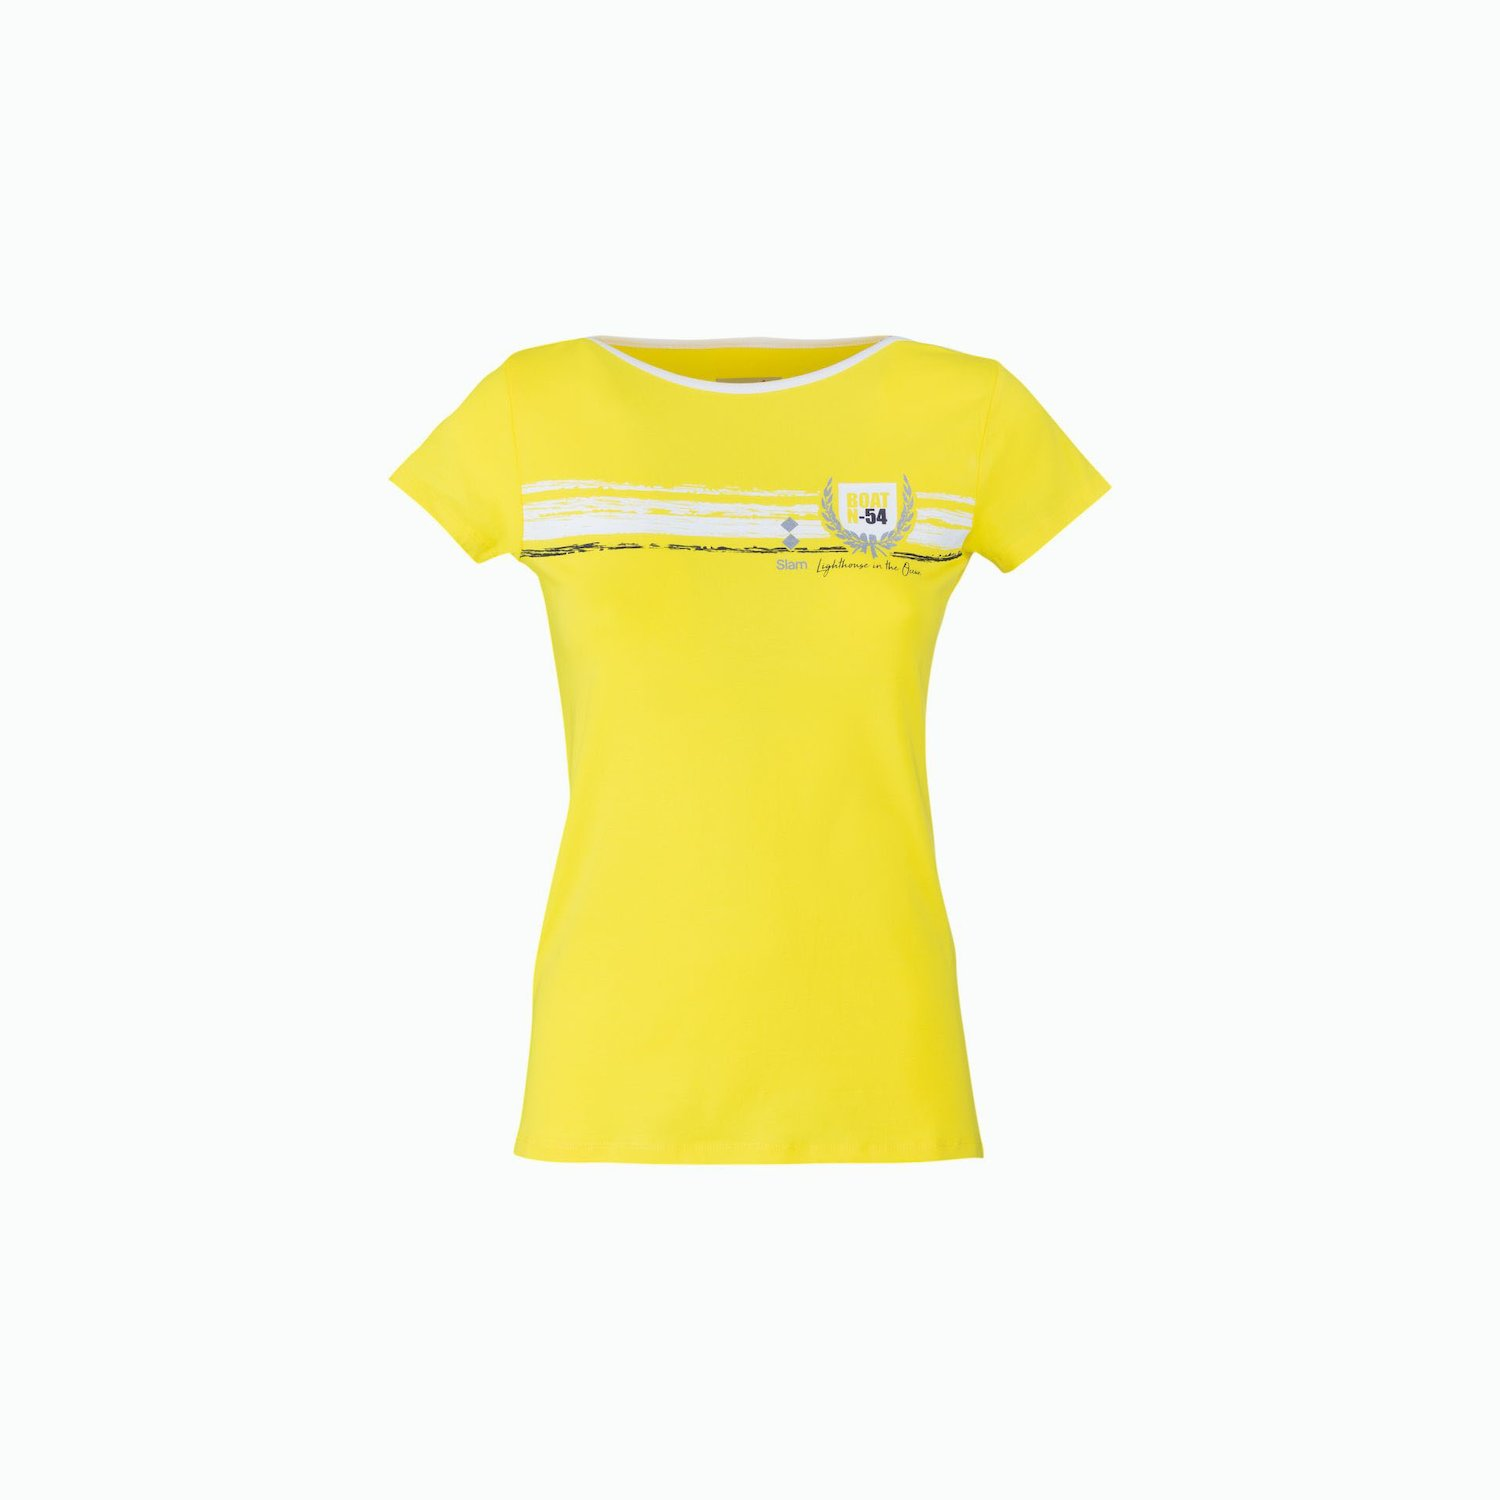 C182 T-Shirt - Blazing Yellow